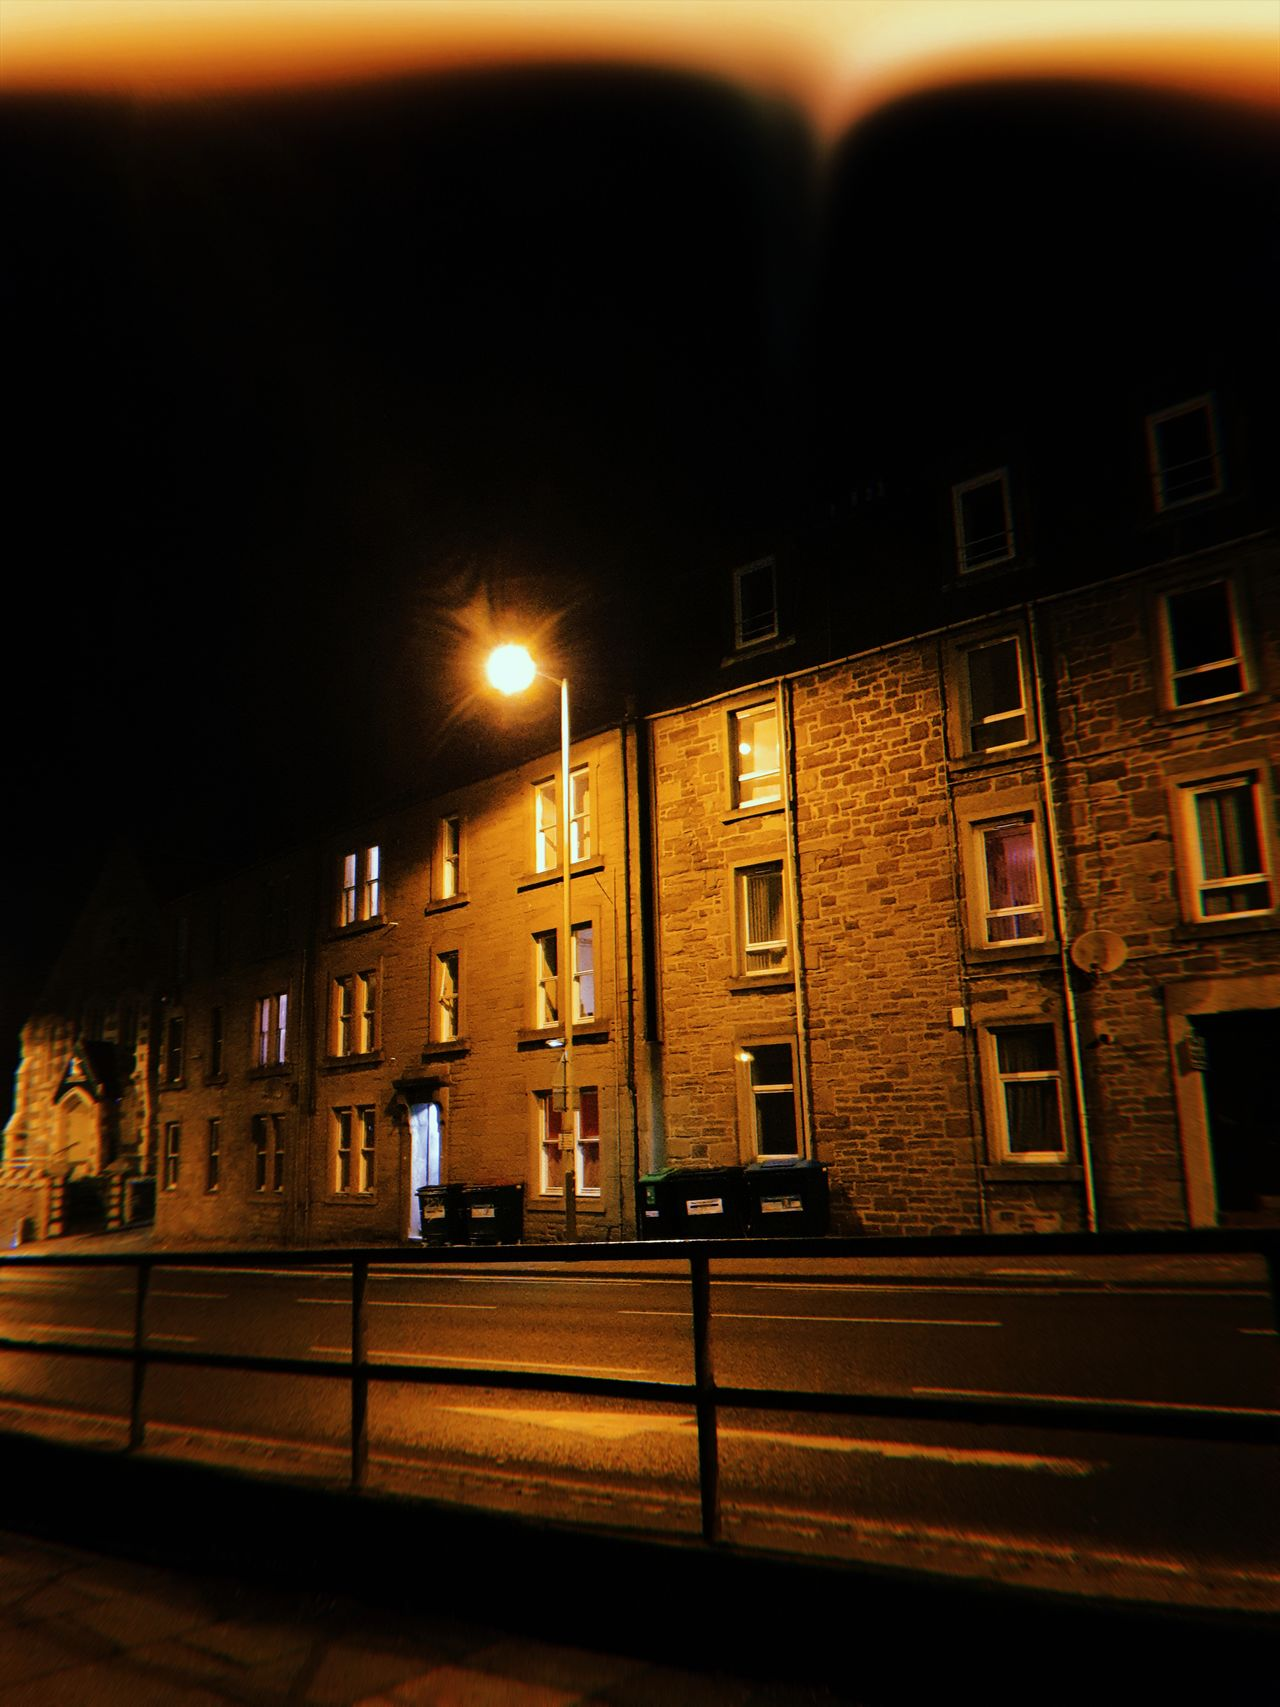 A dark street in Dundee at night. The streetlight lights up part of it with the rest in darkness.